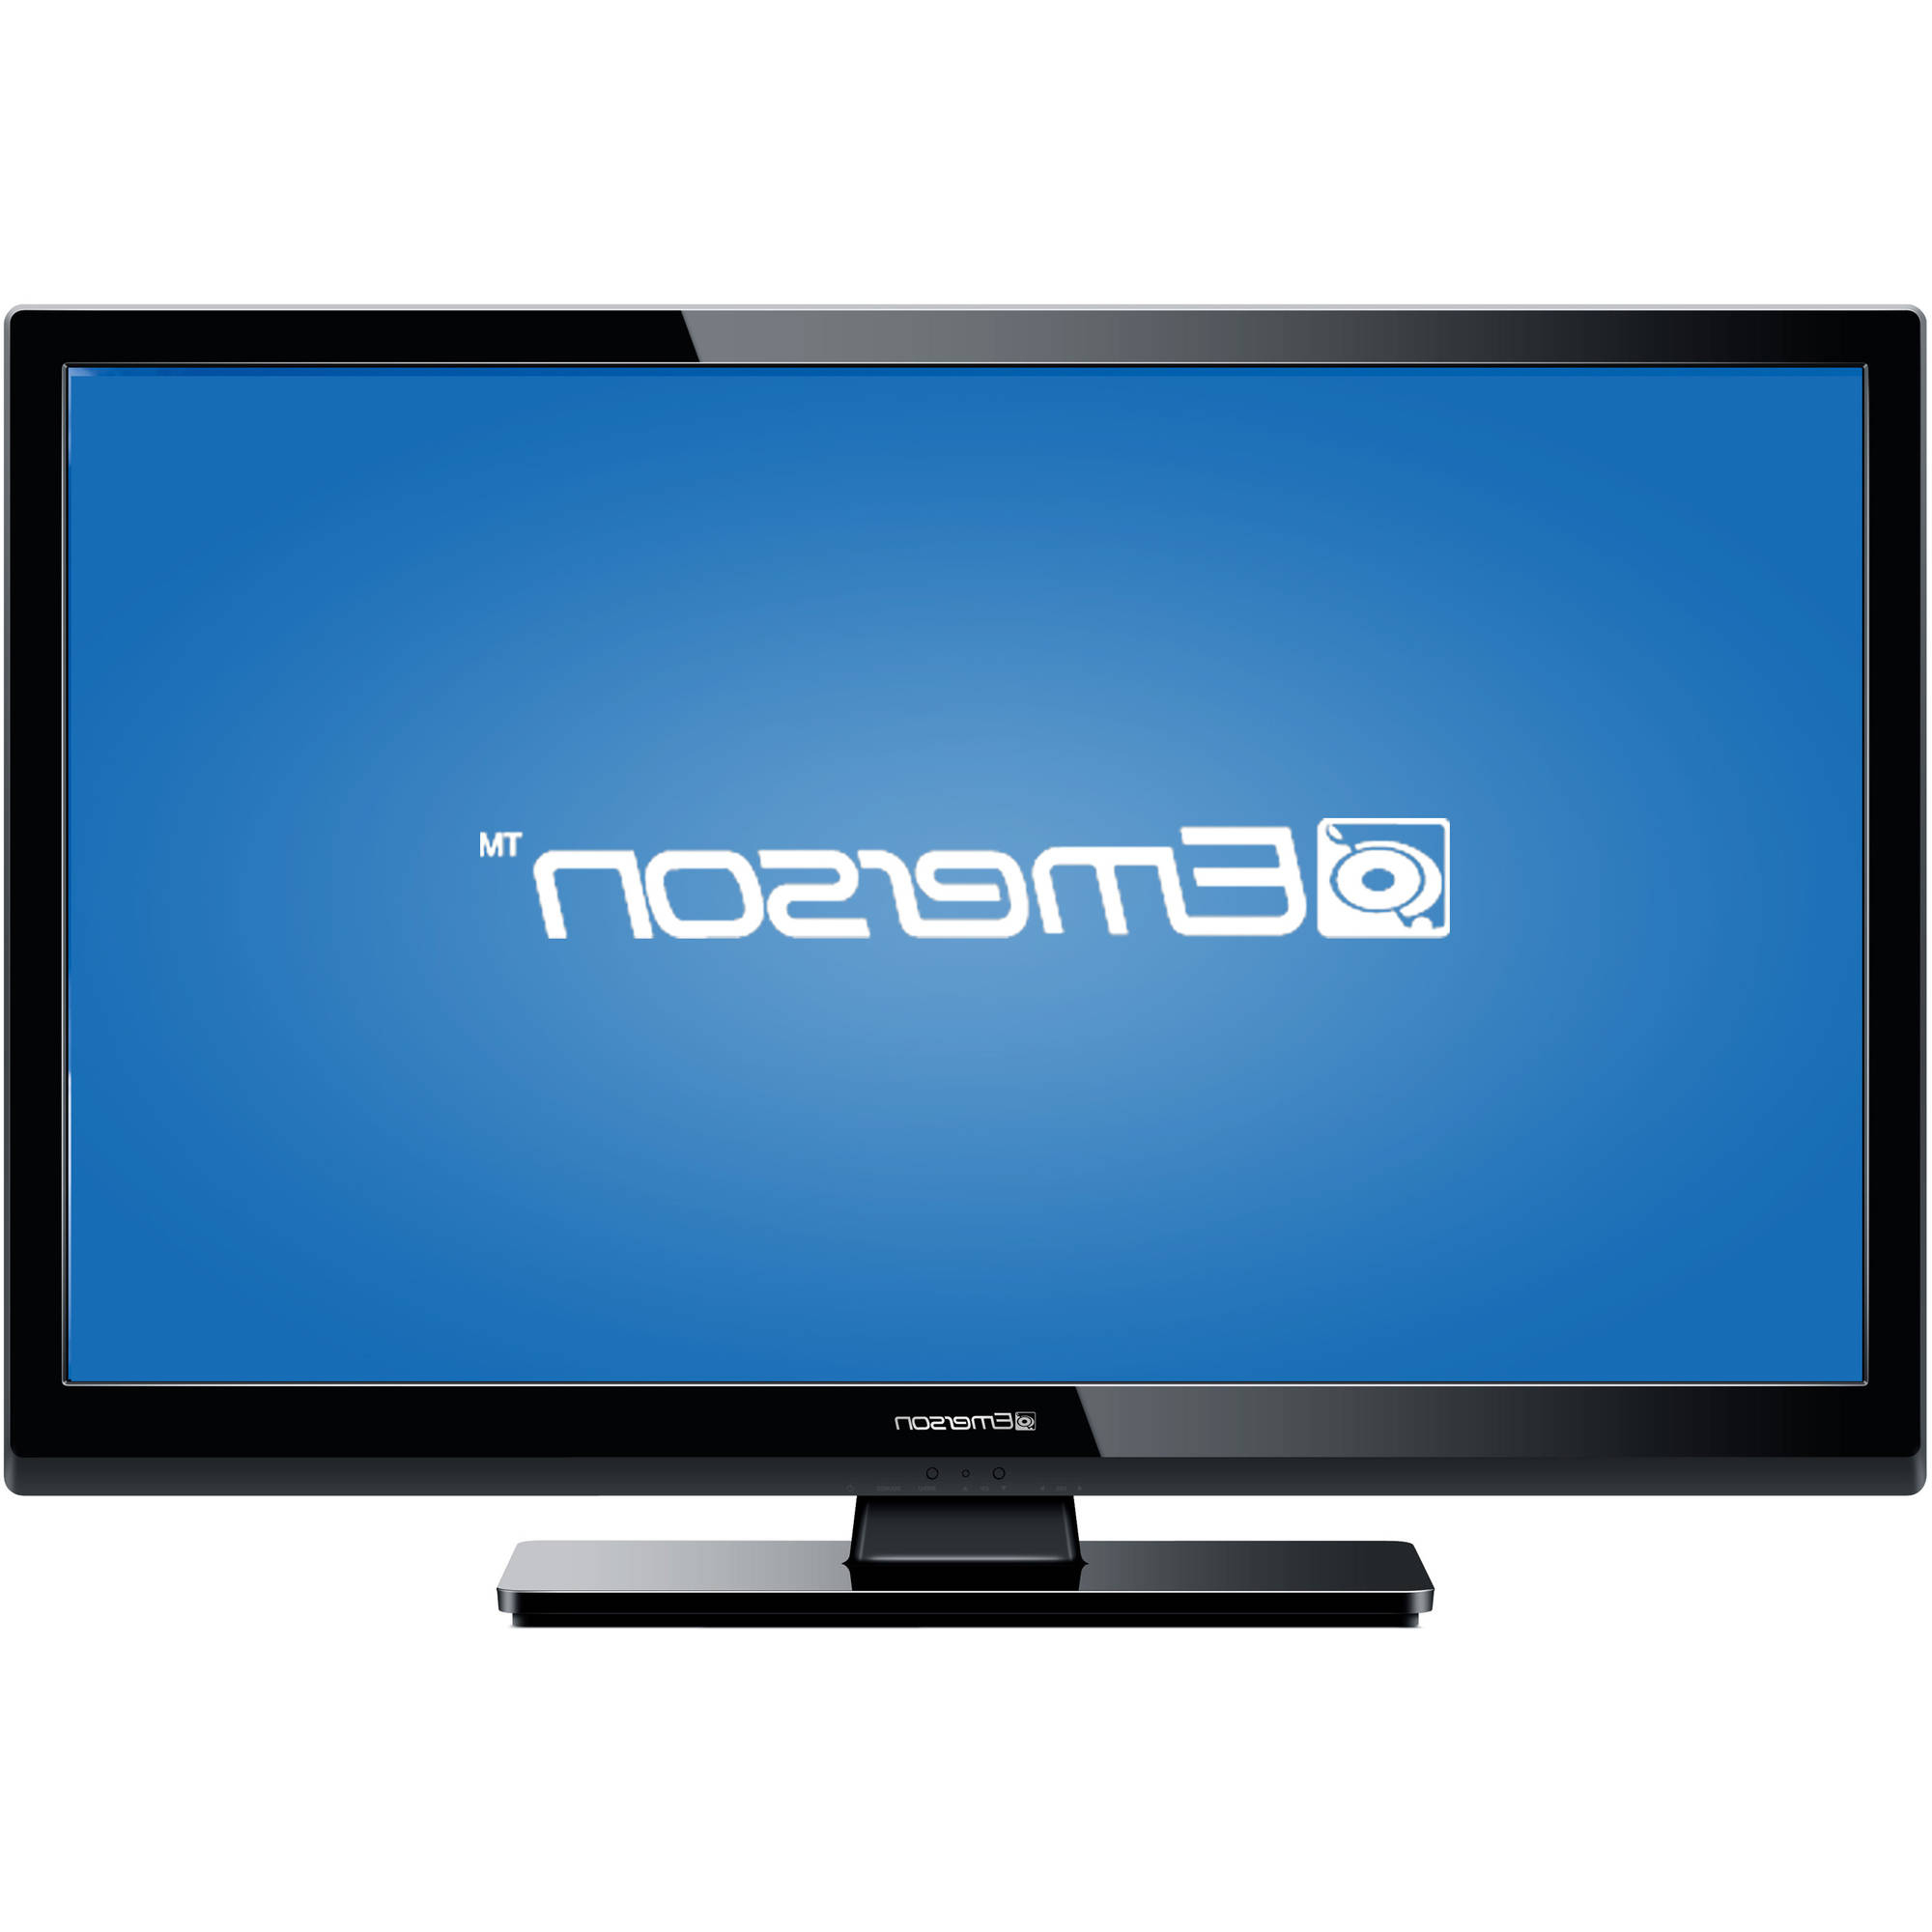 "Well Liked Emerson Lf320Em4 32"" 720P 60Hz Class Led Hdtv – Walmart Pertaining To Emerson Tv Stands (View 19 of 20)"